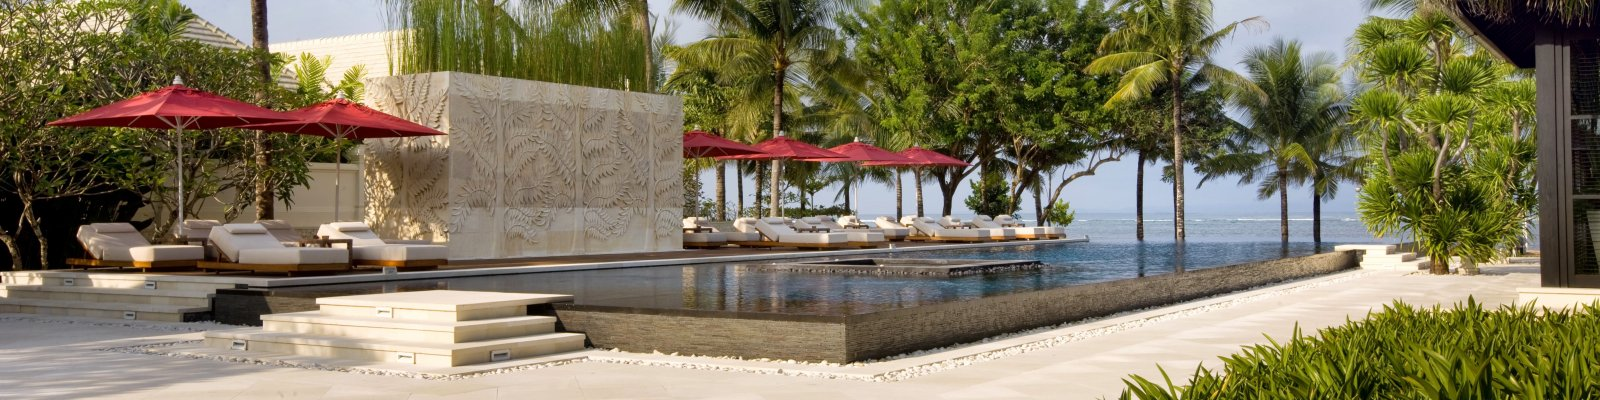 The Royal Santrian Luxury Beach Villas - luksusowe wille na Bali